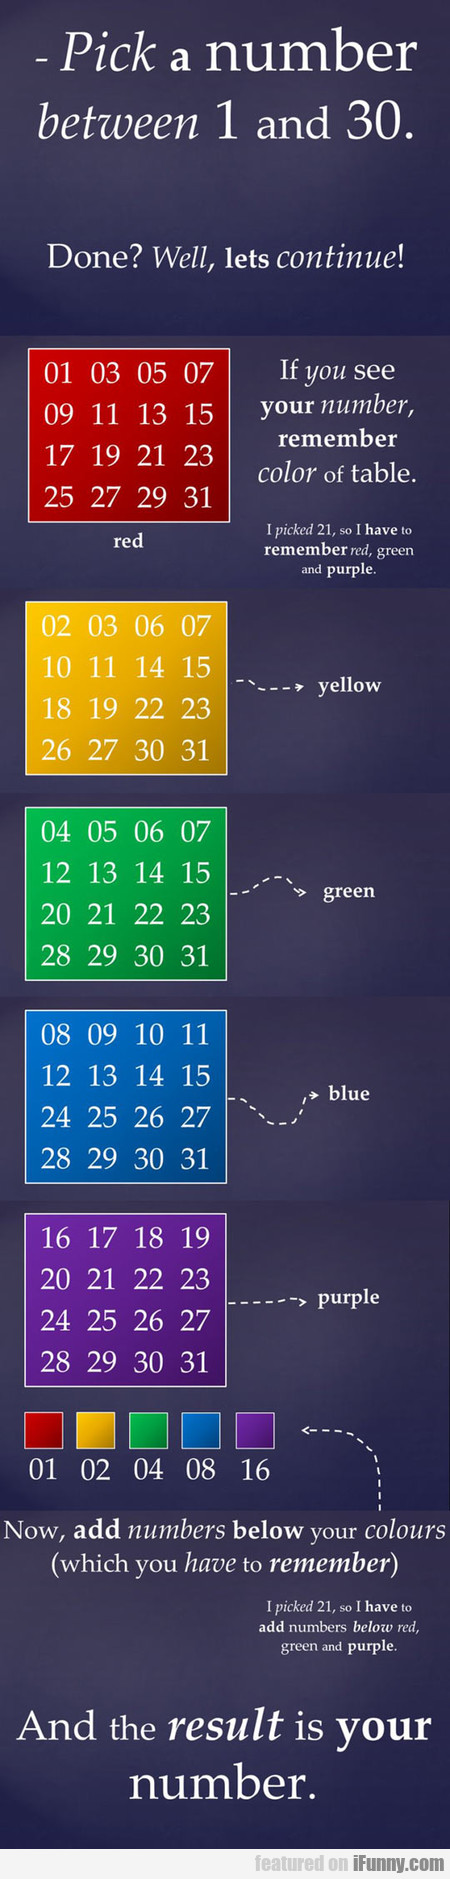 pick a number between 1 and 30